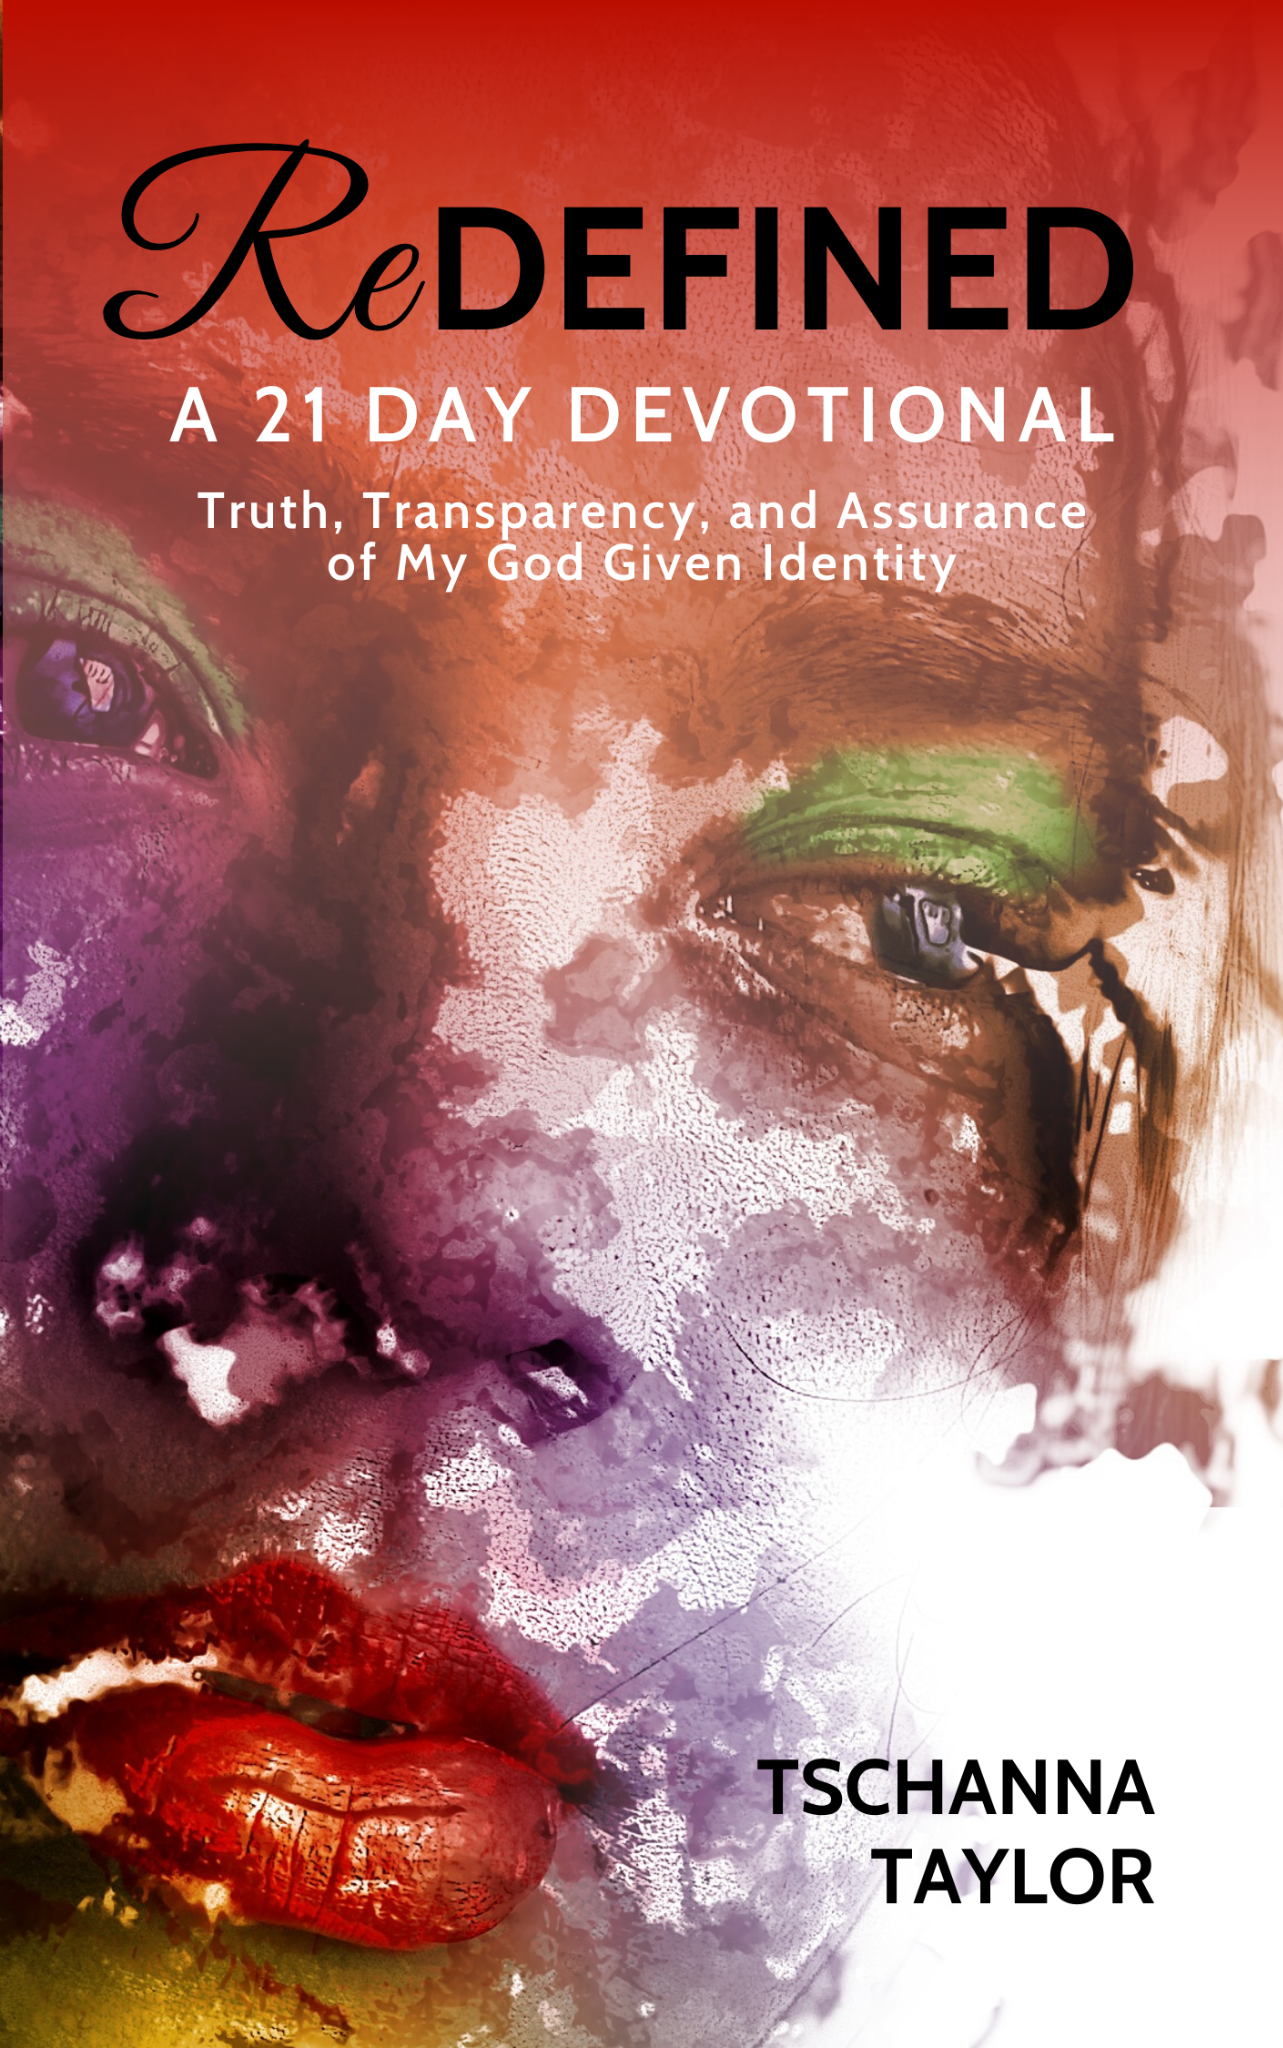 (PRE-ORDER) Redefined- A 21 Day Devotional